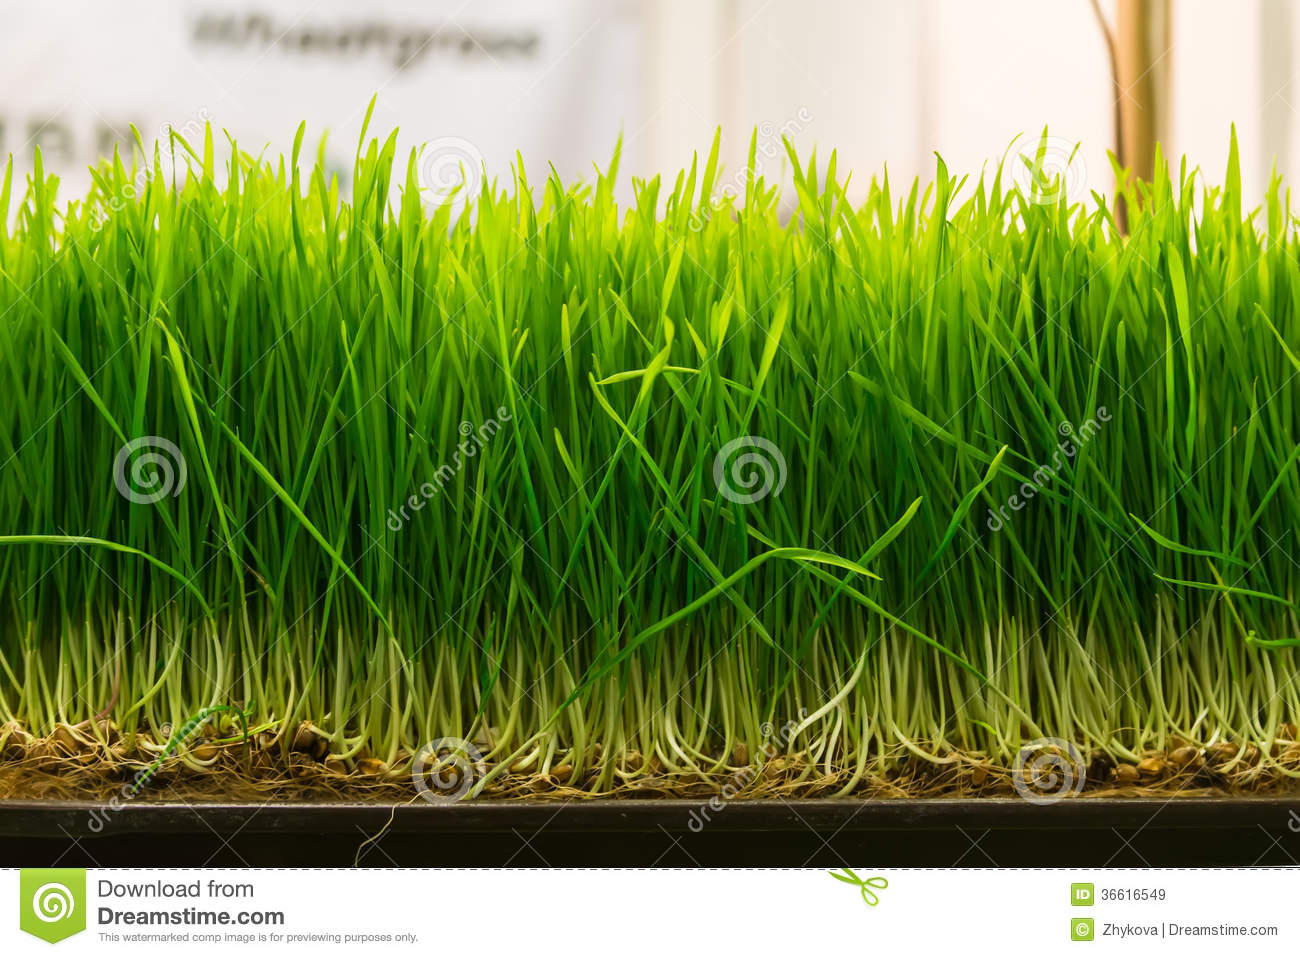 Wheat Germ Royalty Free Stock Images - Image: 36616549